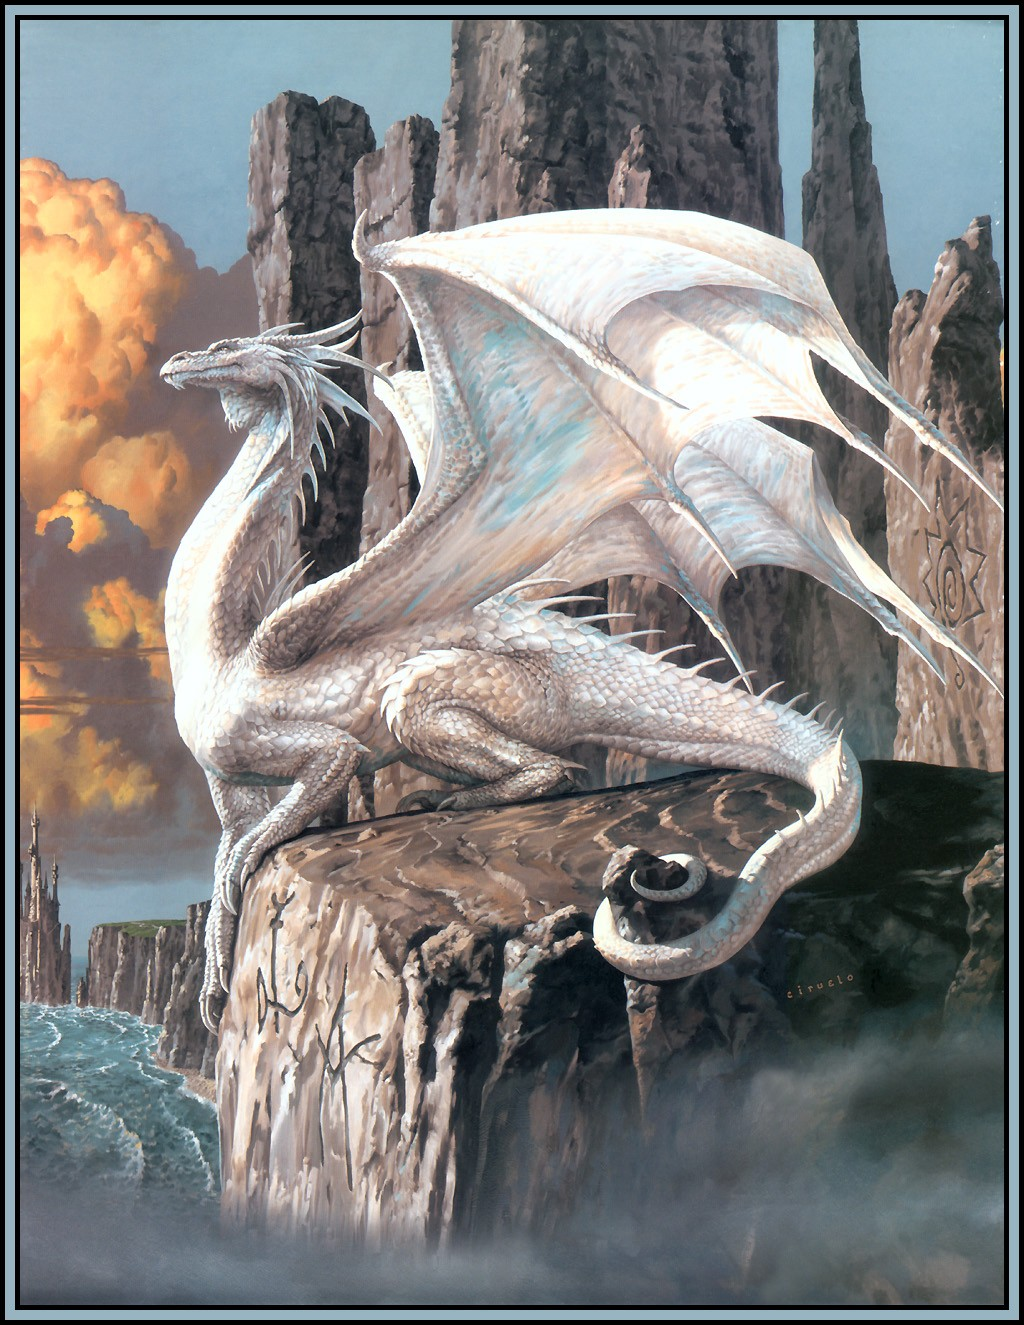 Hobsyllwin the White Guardian Art  ID 6327  Art Abyss